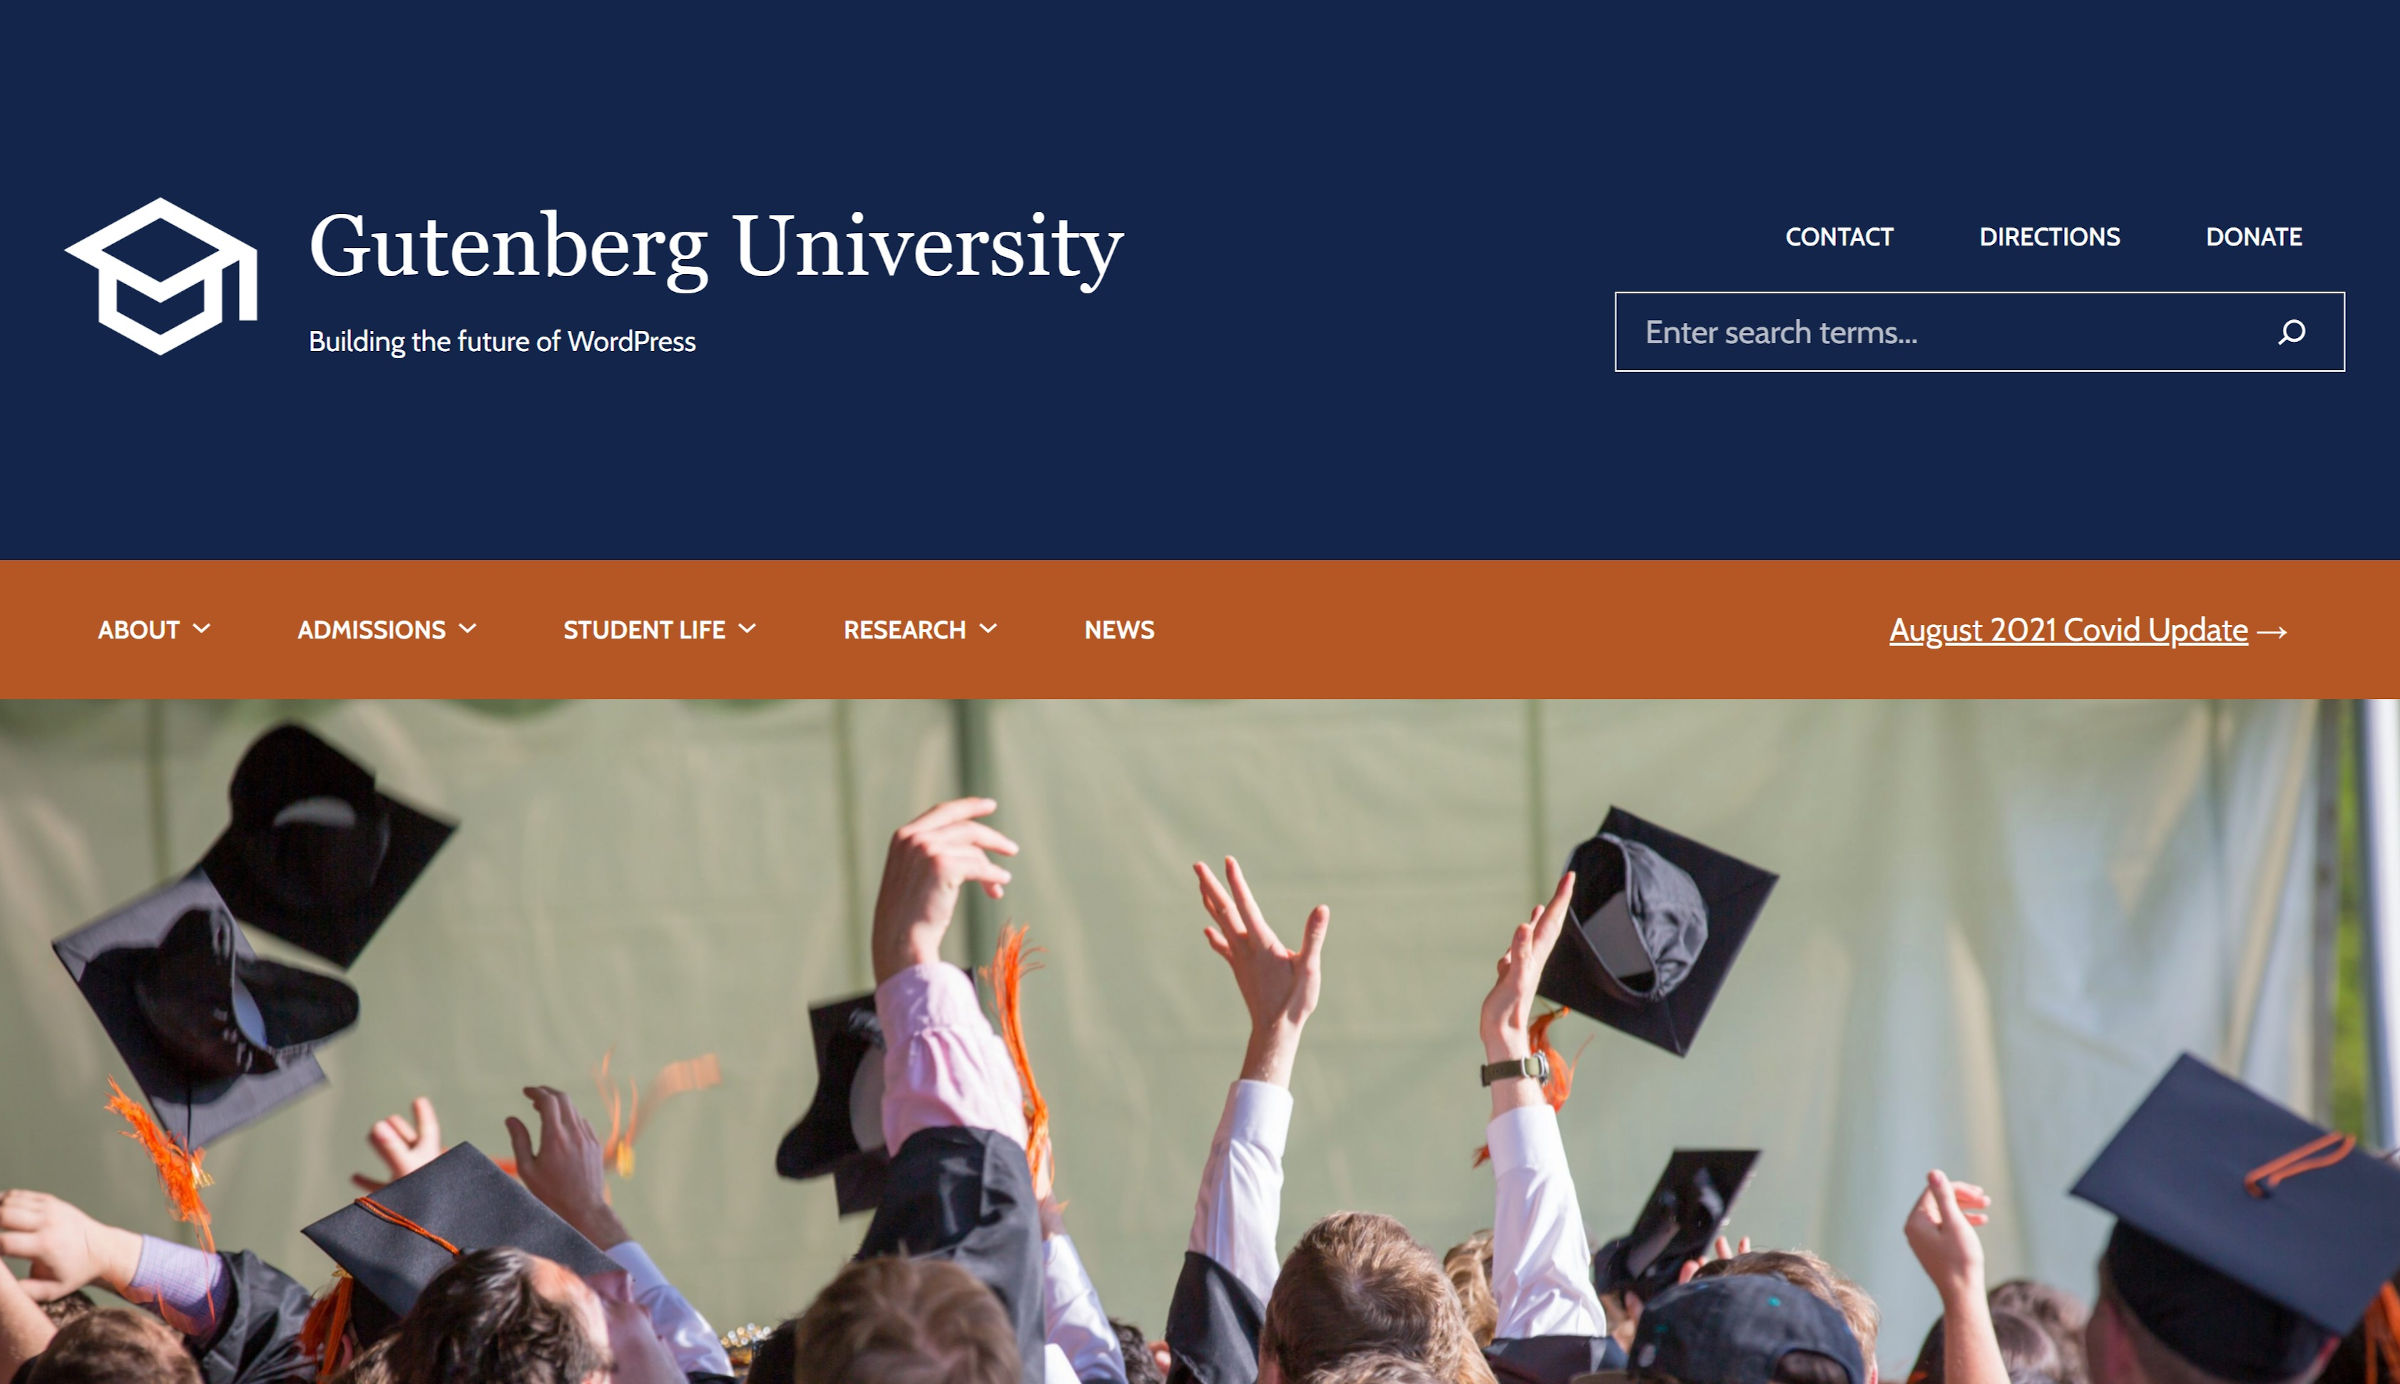 Fictional university website header with logo, title, description, navigation, and featured image.